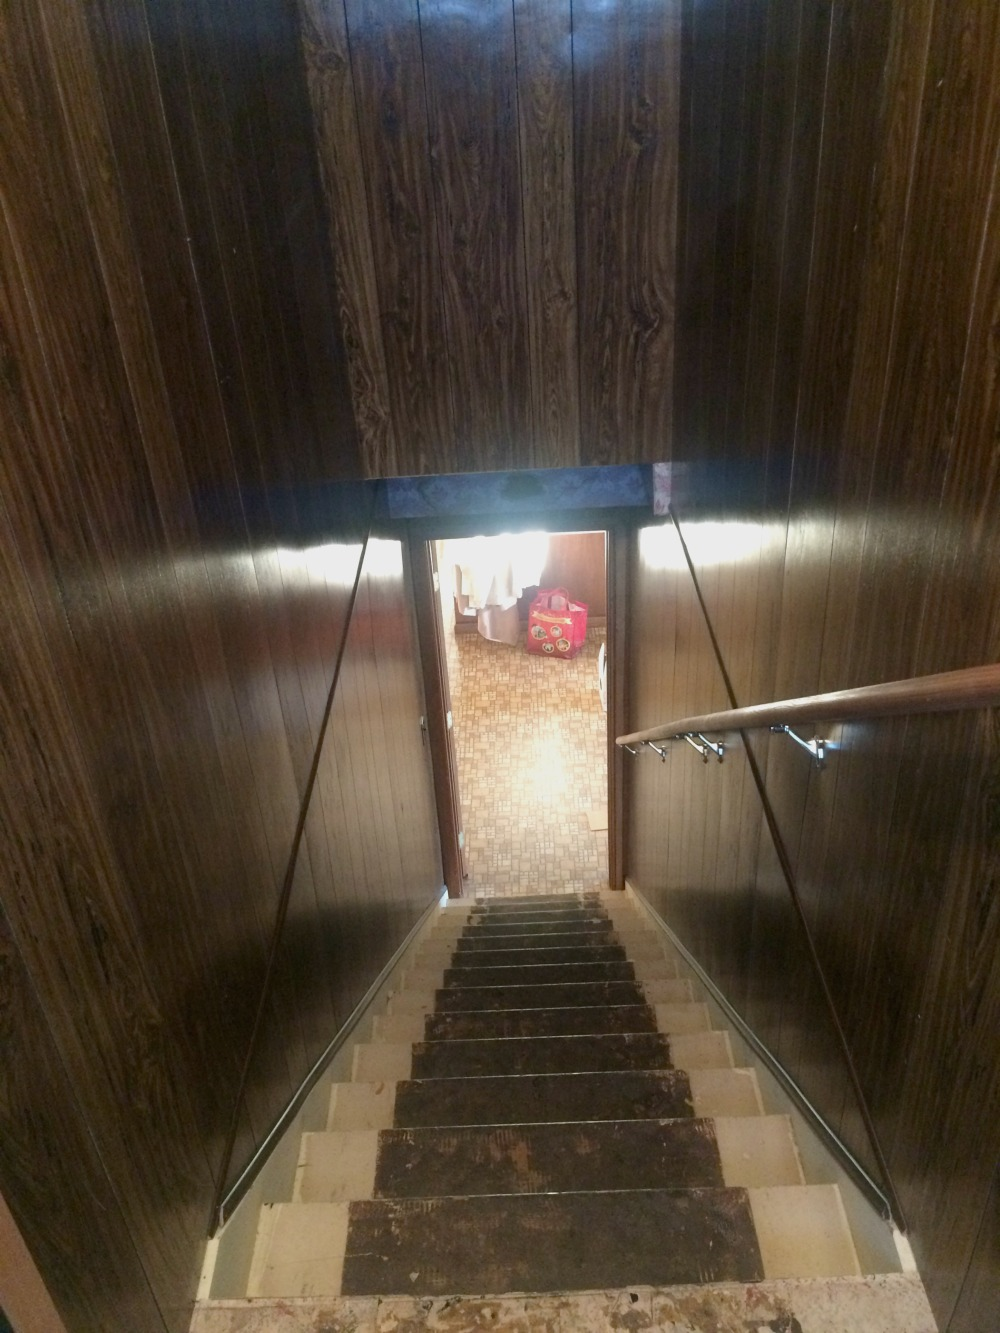 A view down a stairwell with dark wood paneling